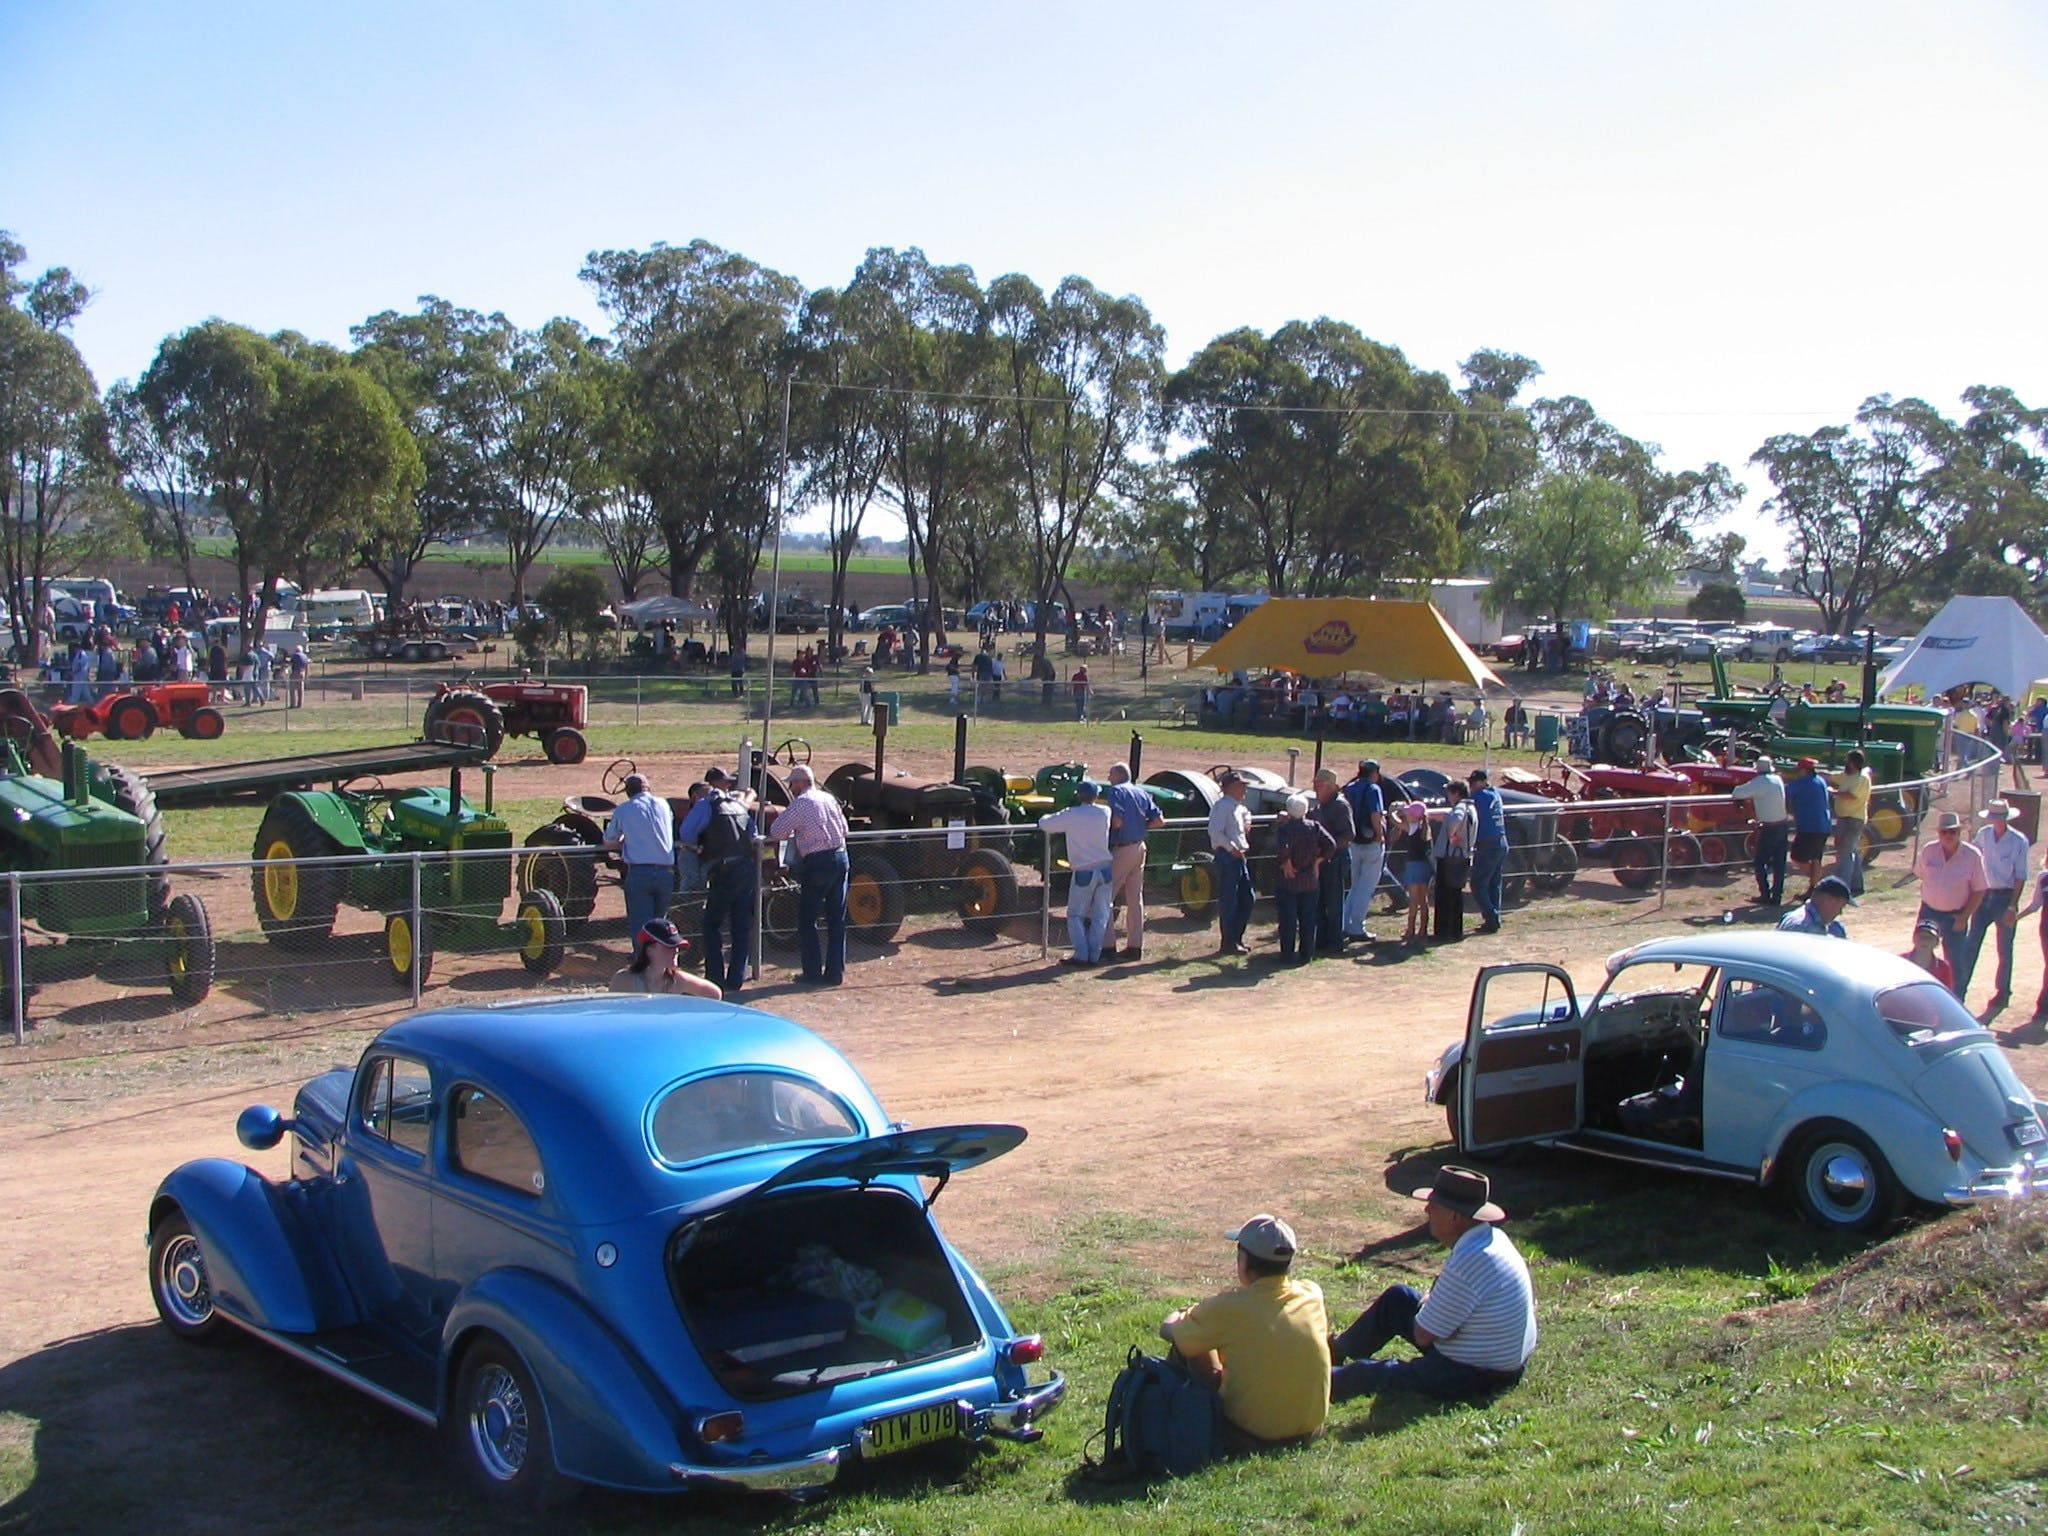 Quirindi Rural Heritage Village - Vintage Machinery and Miniature Railway Rally and Swap Meet - Australia Accommodation